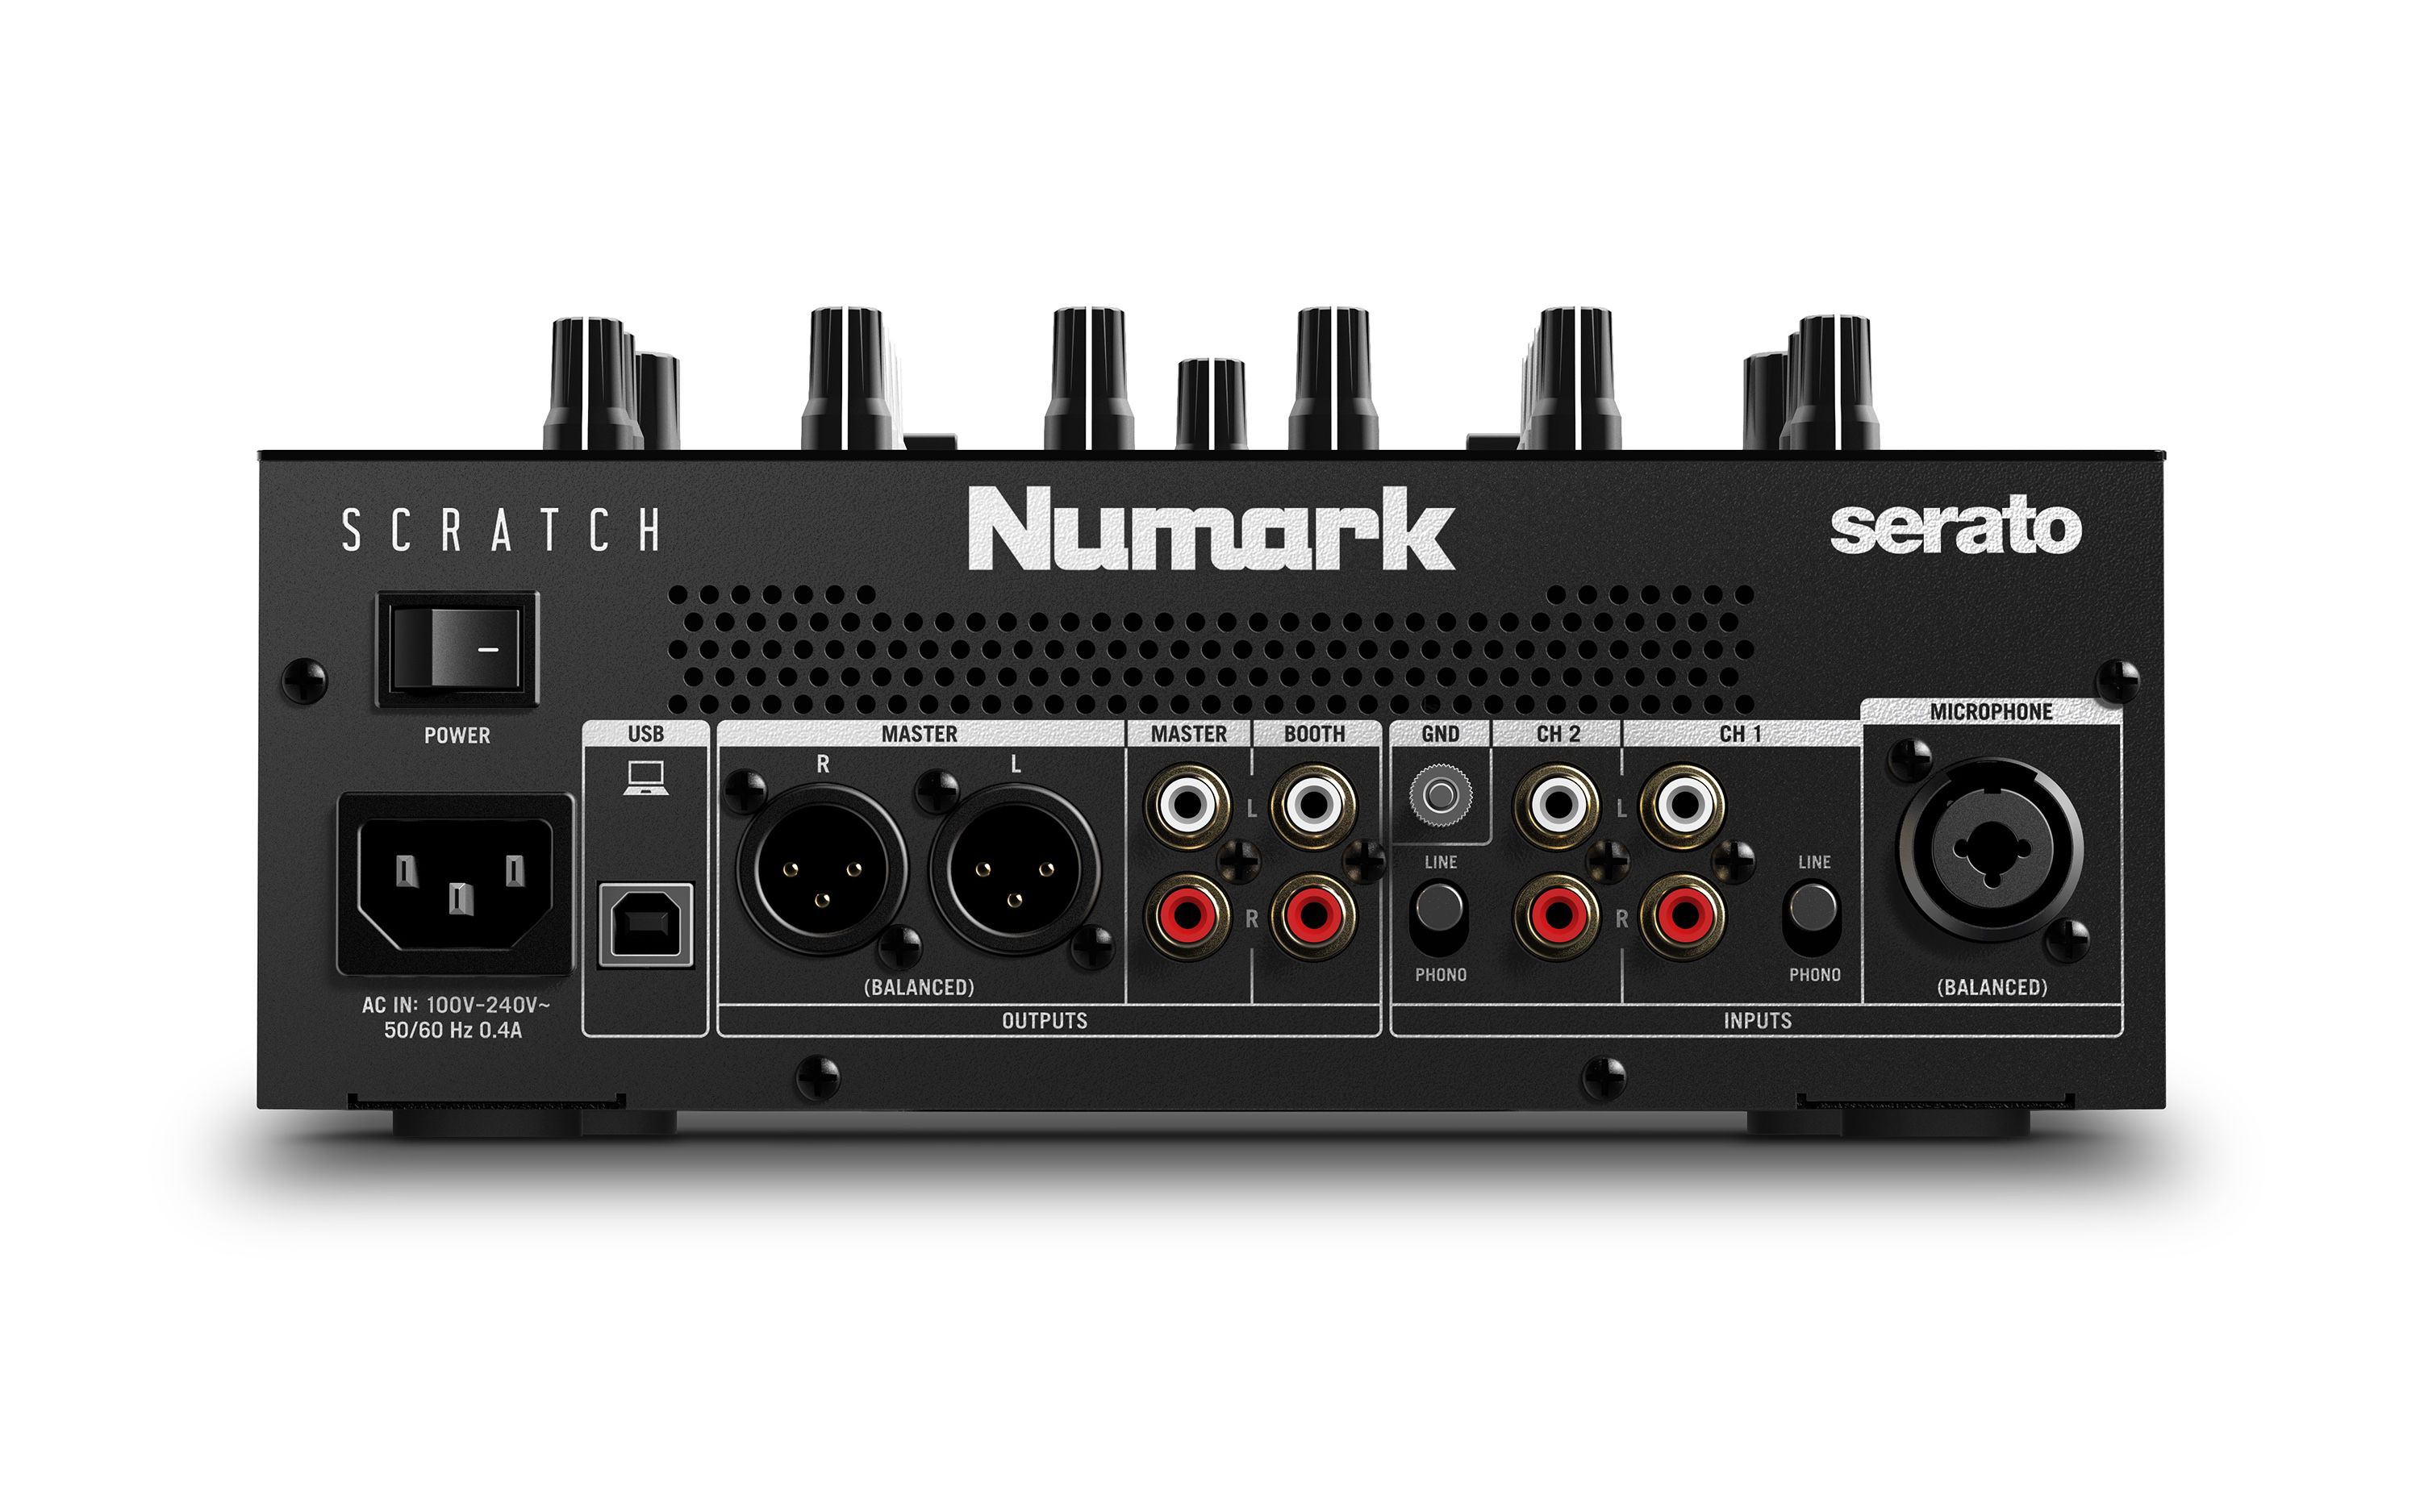 Numark Scratch: A $500 battle mixer with pads, FX paddles